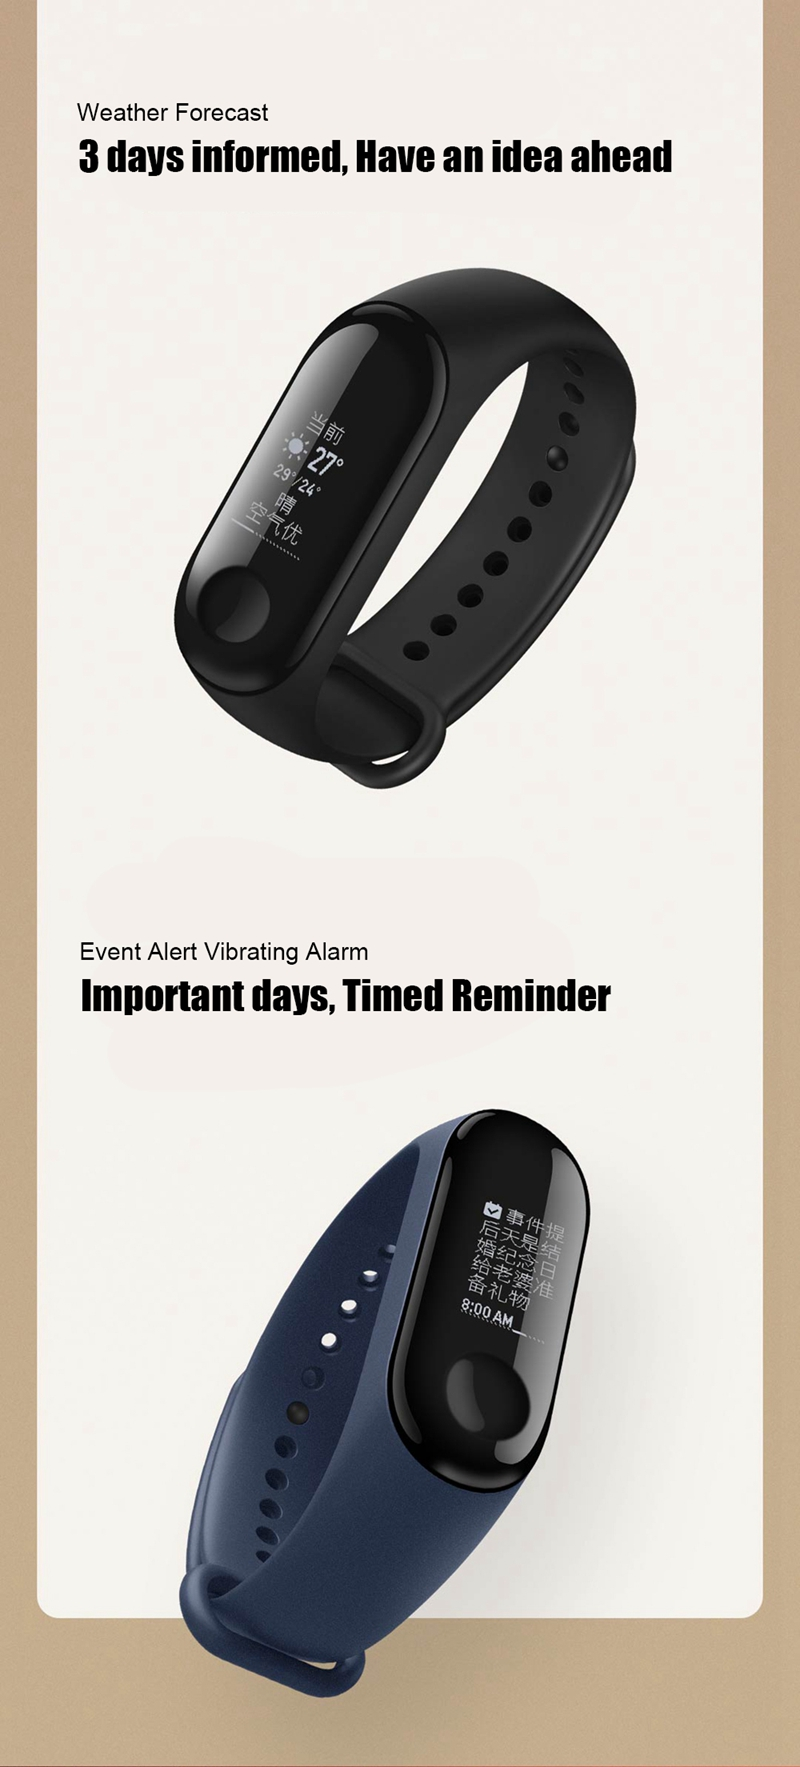 Newest Original Xiaomi Mi Band 3 Smart Band NFC Version Fitness Tracker Heart Rate Monitor 5ATM Waterproof Bluetooth Wristbands 27